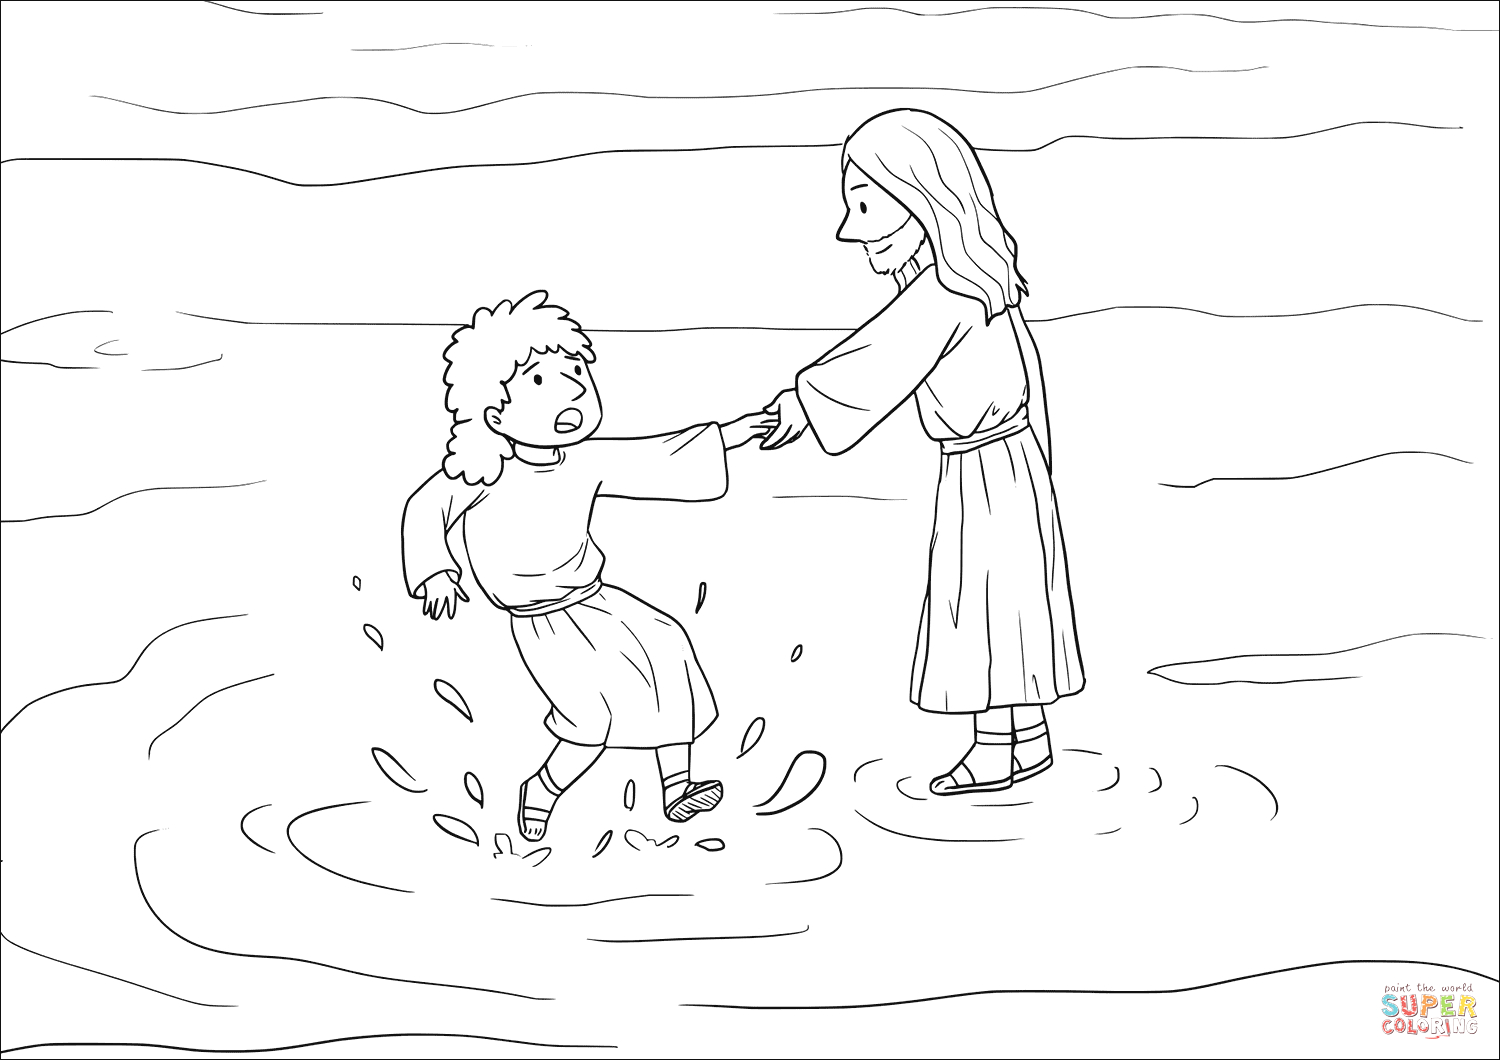 peter got down out of the boat walked on the water and came toward jesus